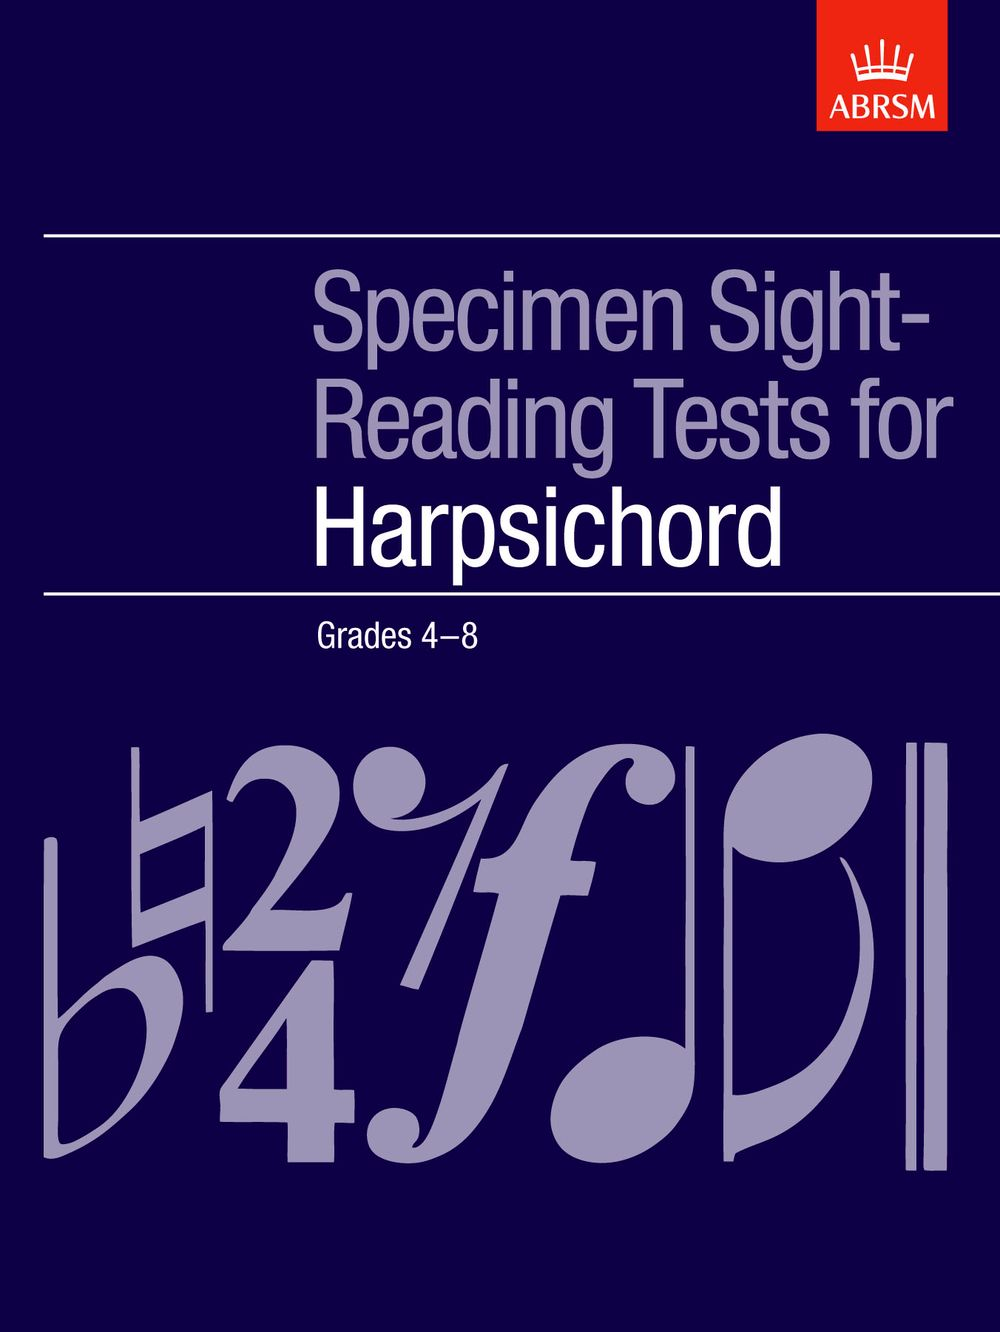 Specimen Sight-Reading Tests for Harpsichord: Harpsichord